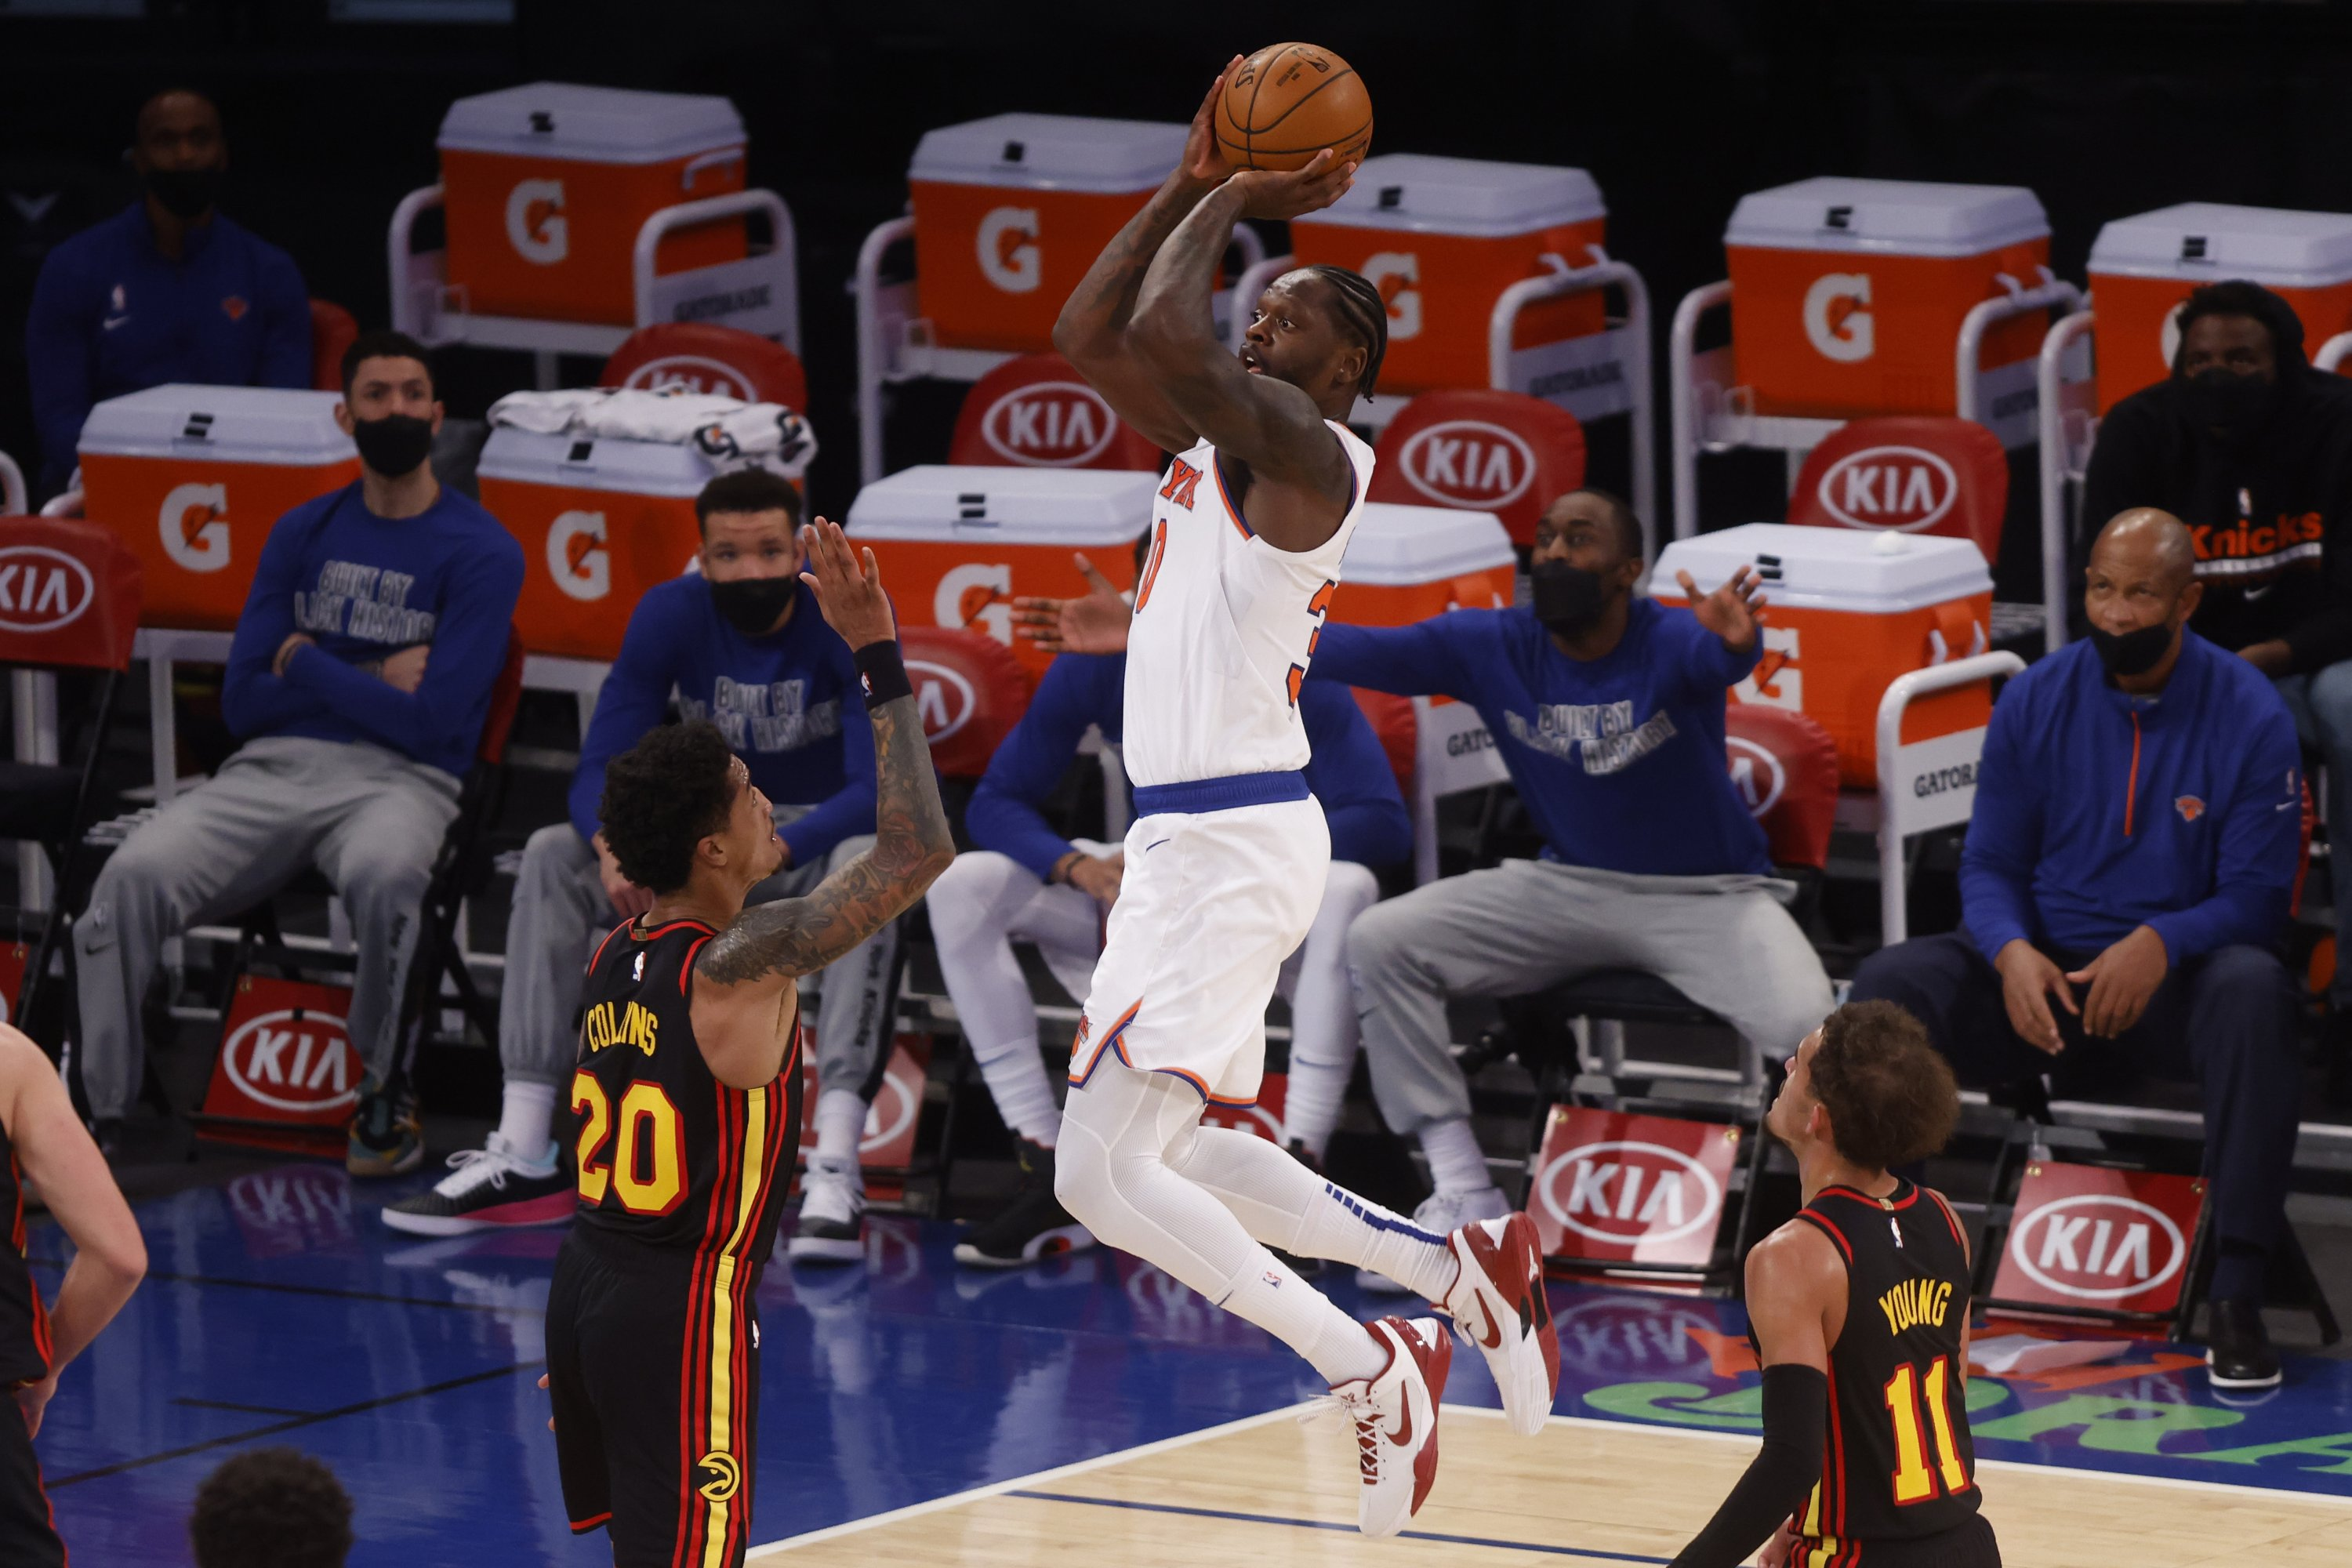 New York Knicks' Julius Randle (C) shoots in front of Atlanta Hawks' John Collins (L) and Trae Young (R) during an NBA basketball game, New York, U.S., Feb. 15, 2021. (AP Photo)